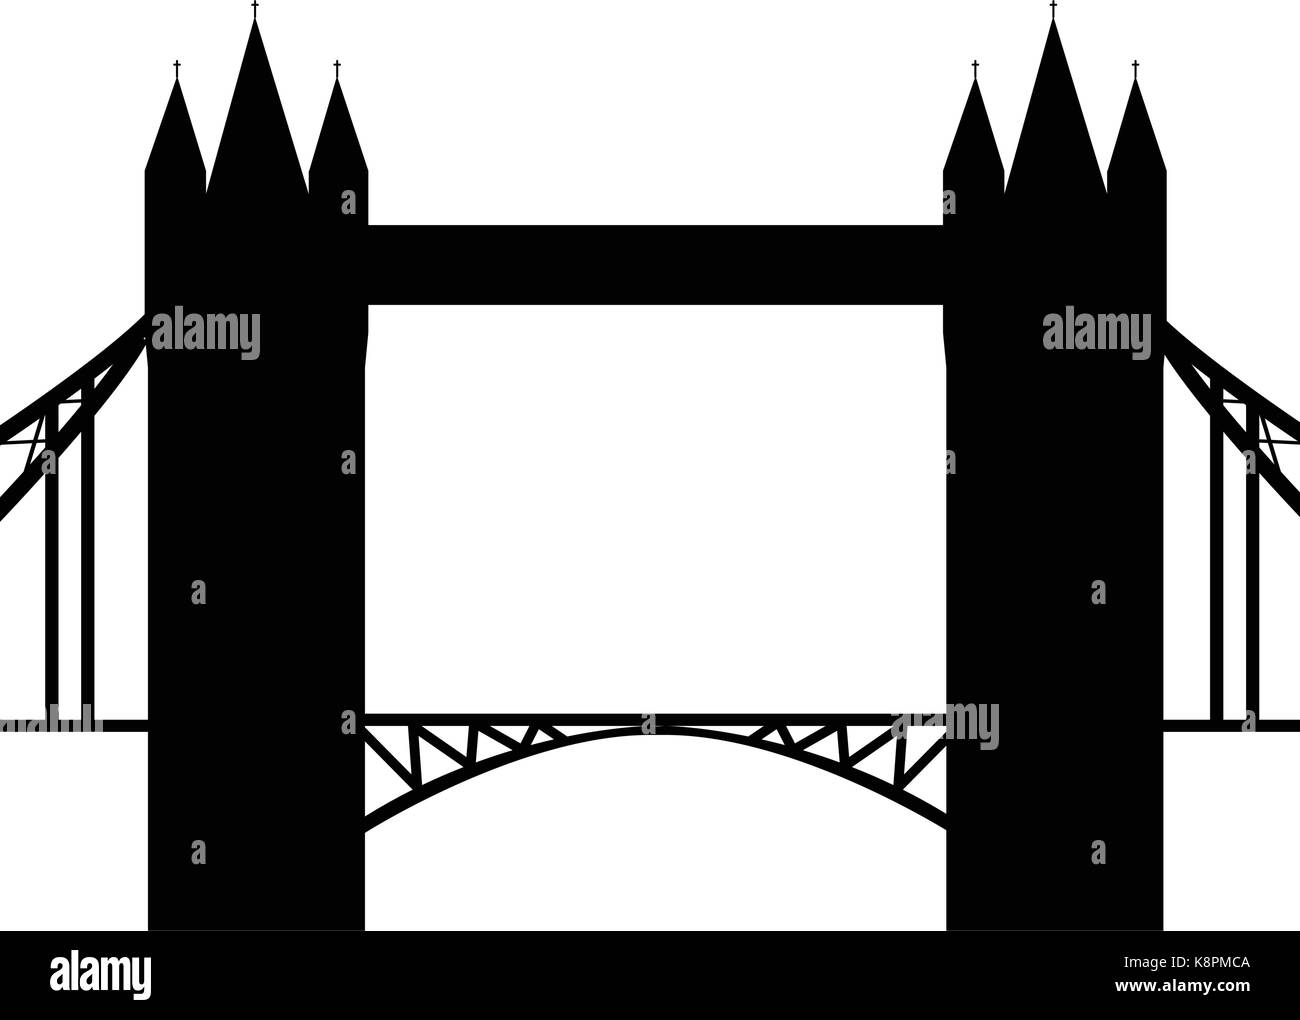 Image of cartoon Tower bridge silhouette. Vector illustration isolated on white background. - Stock Vector